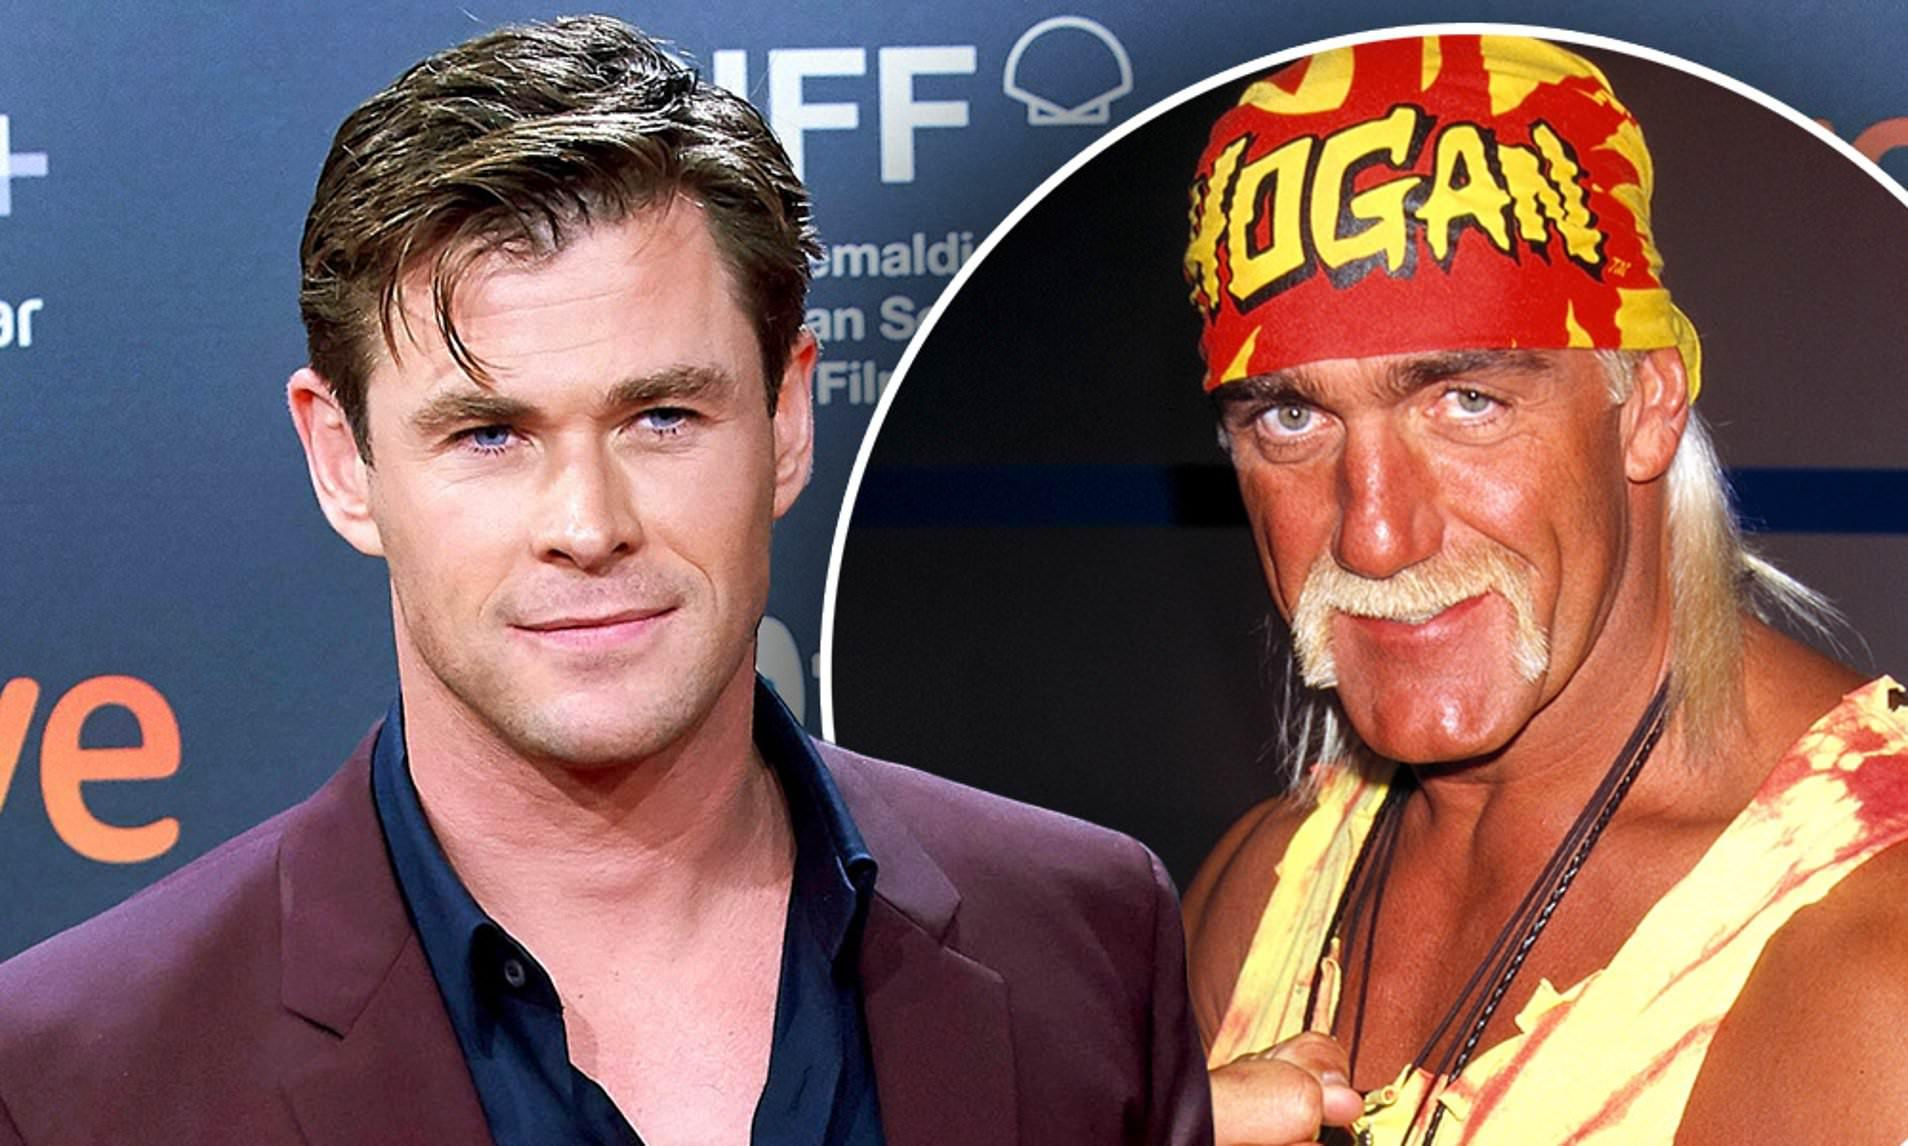 """Actor Chris Hemsworth Says Hulk Hogan Biopic Role Is """"Insanely Physical"""""""